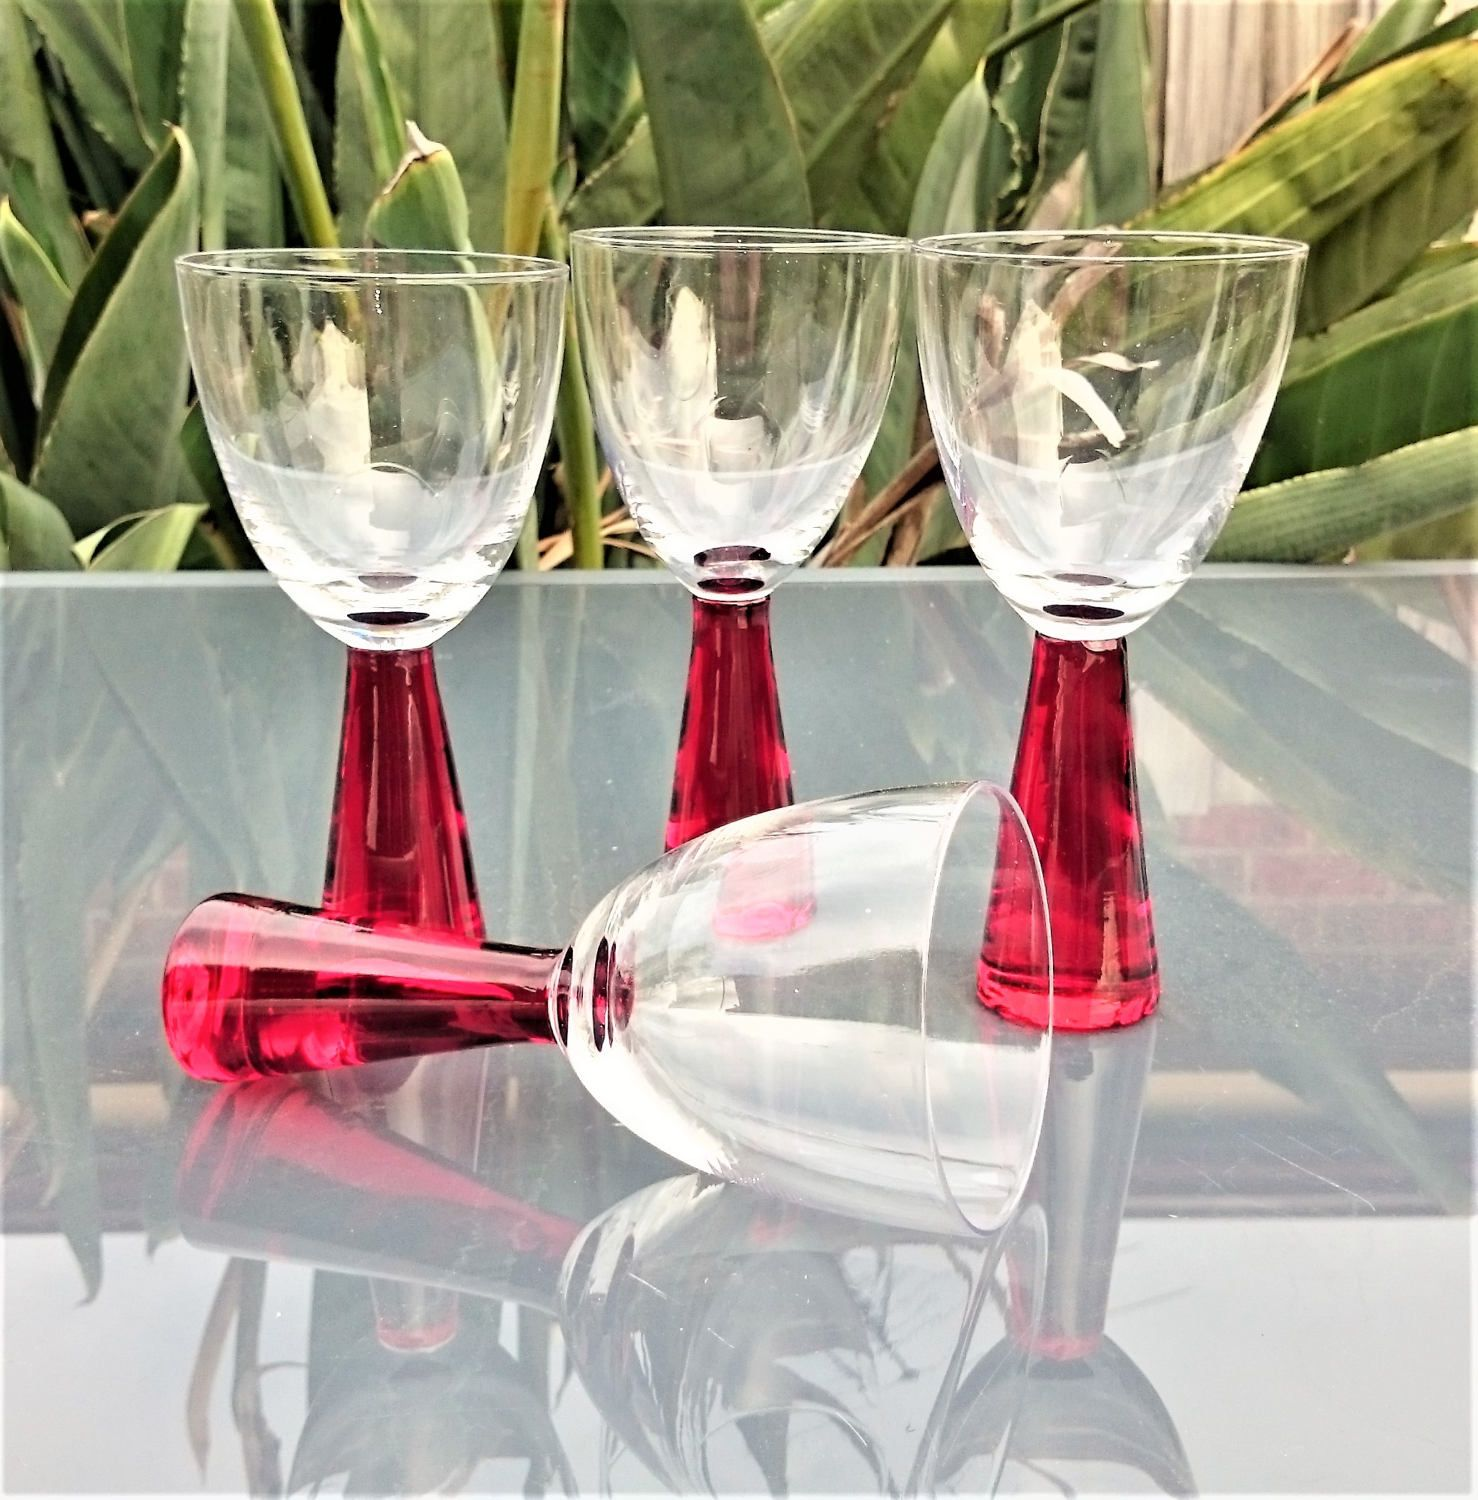 Vintage Red Thick Stem Wine Glasses Set Of 4 By Penelainbricandbrac On Etsy Wine Glasses Wine Etsy